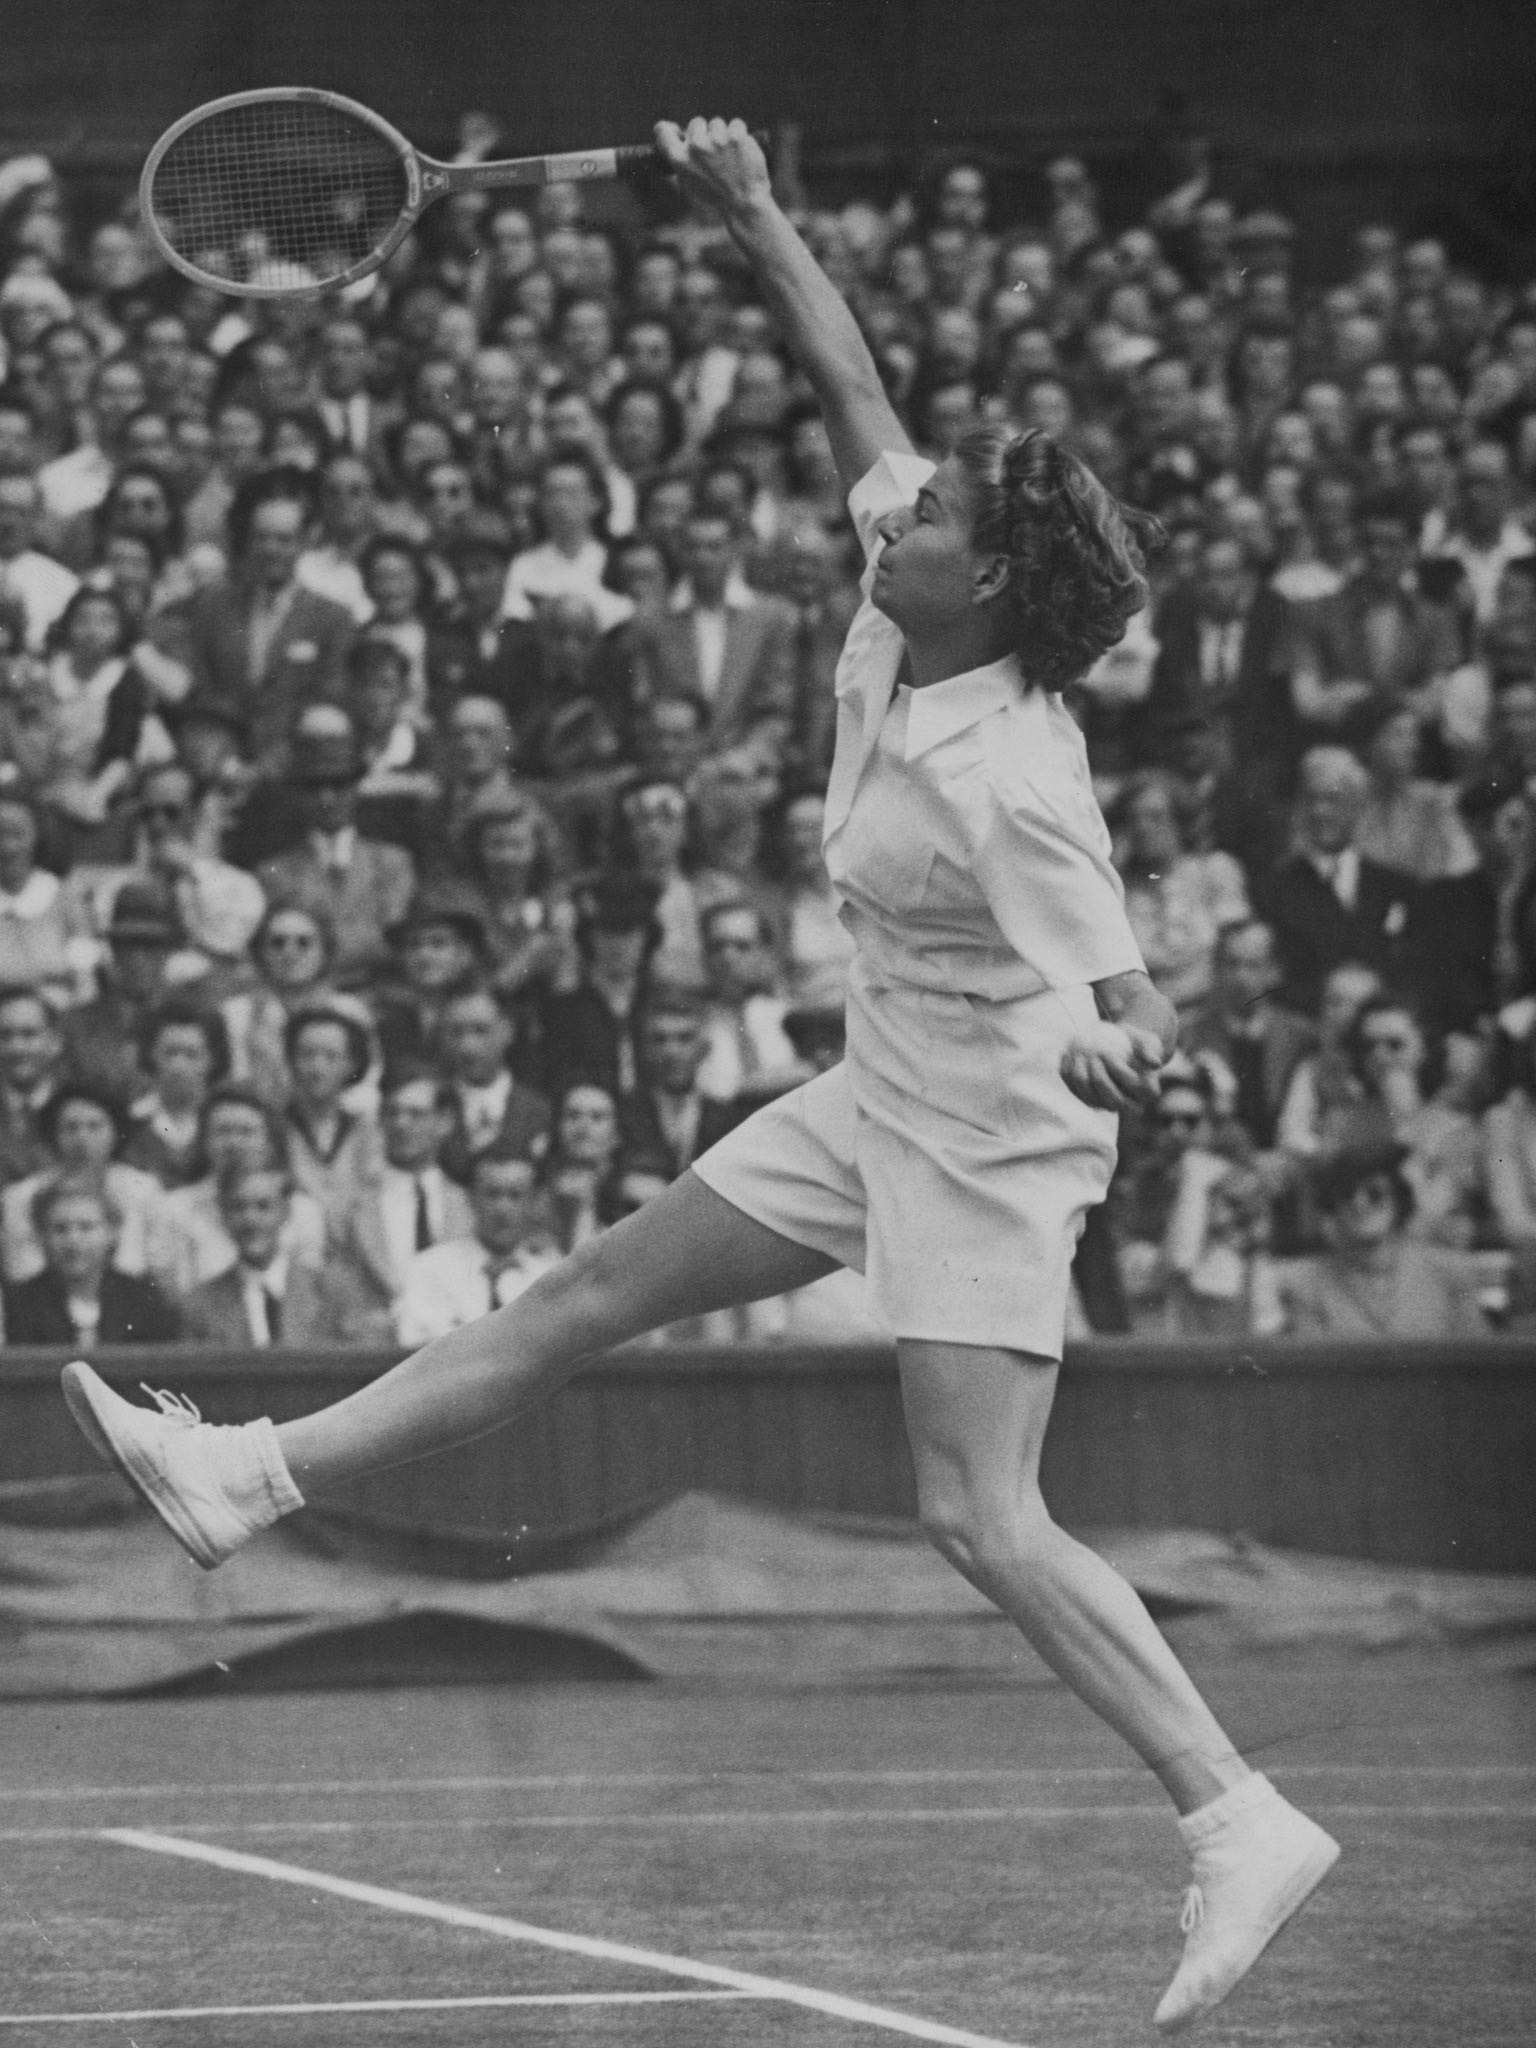 Louise Brough Tennis player and doubles expert who won 35 Grand